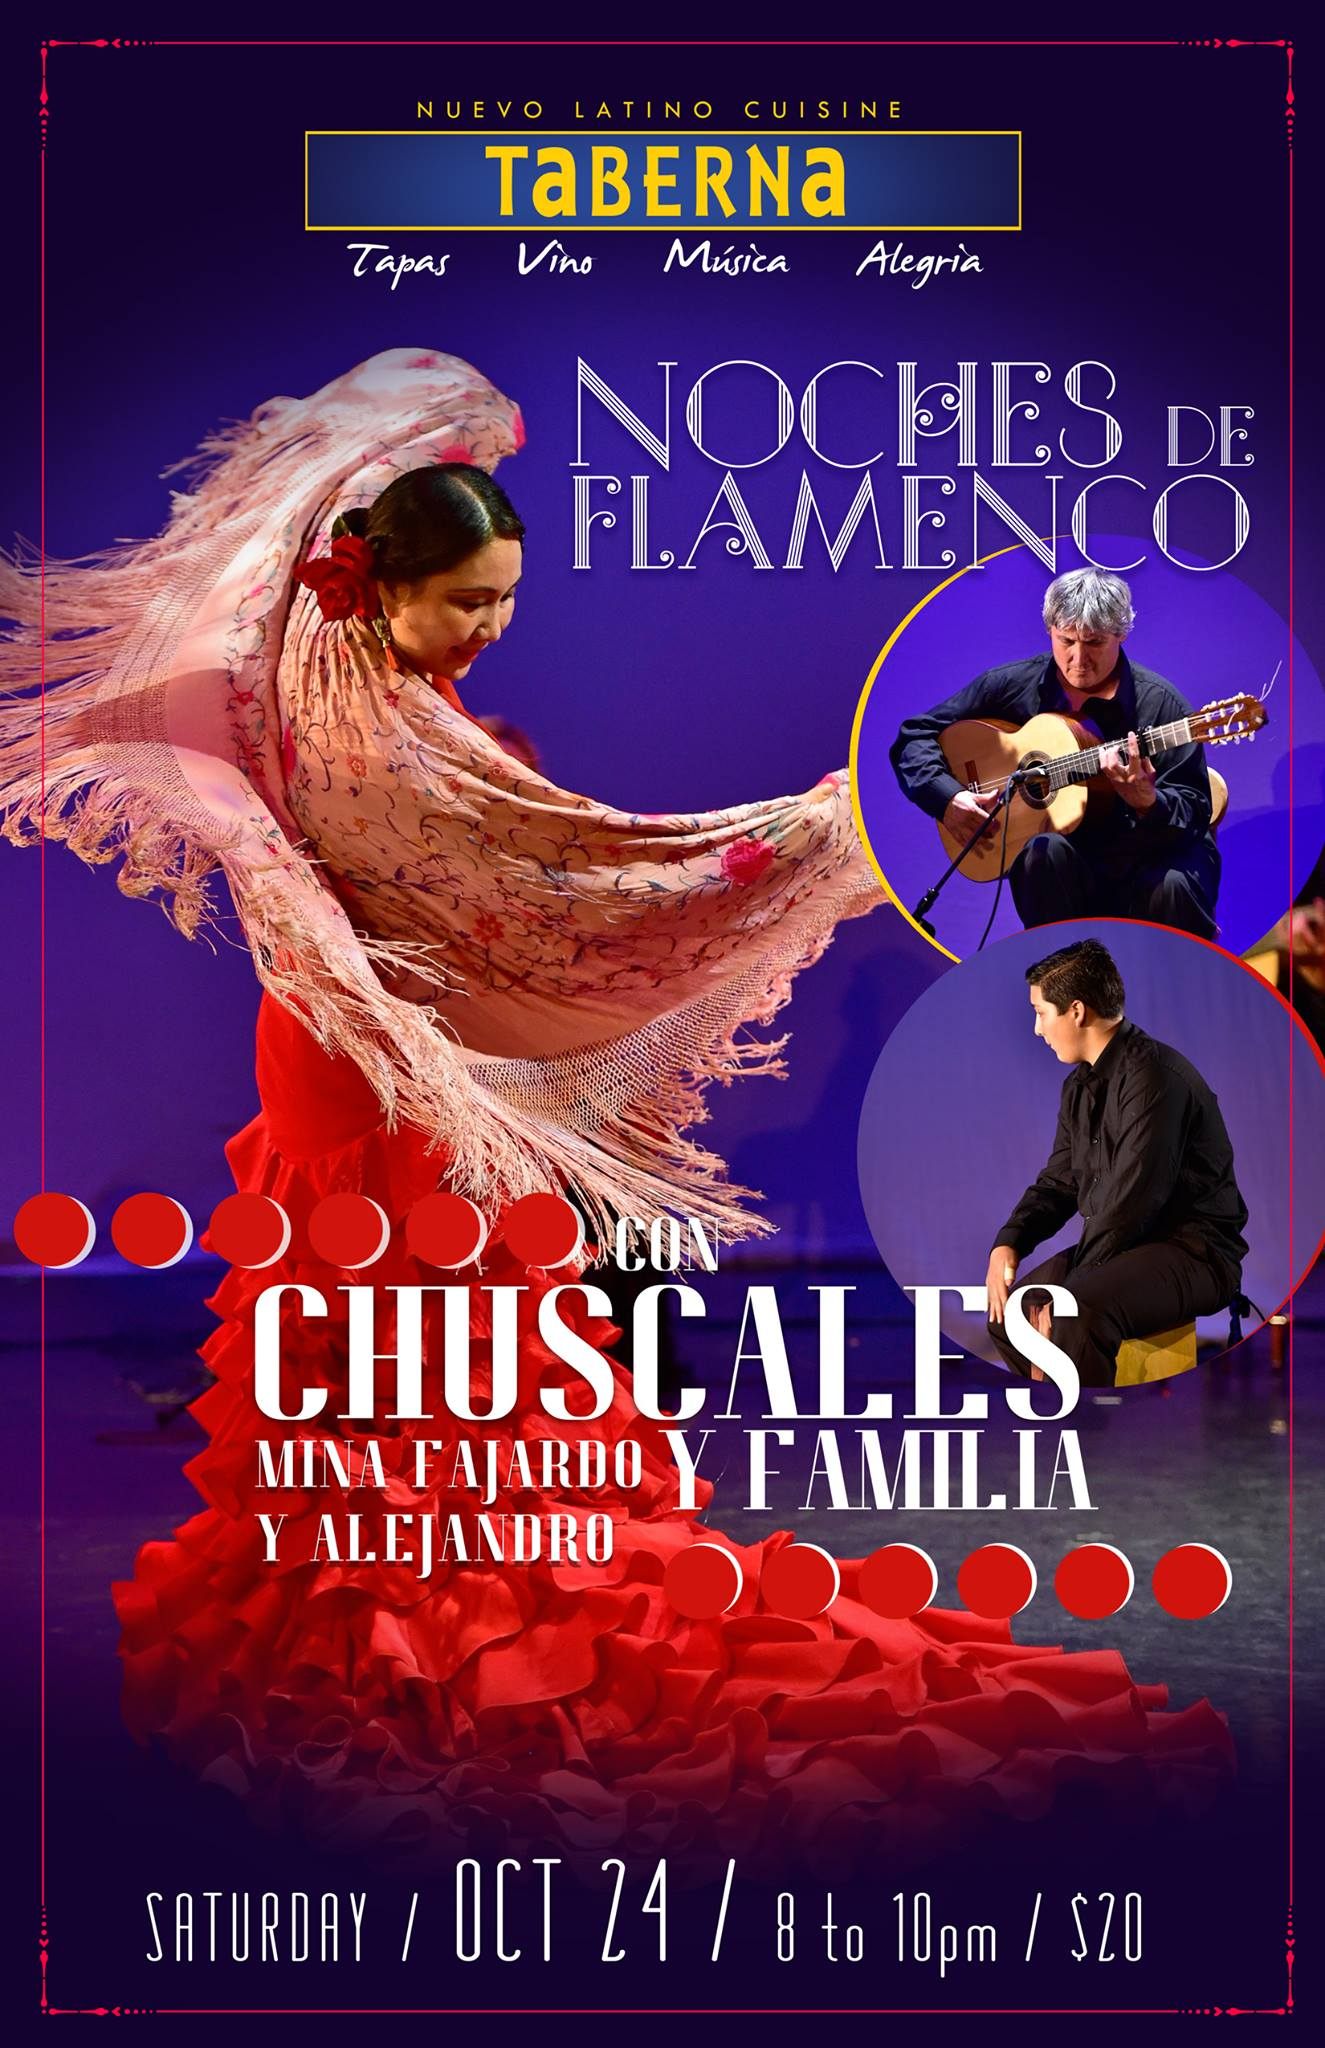 Noches de Flamenco, October 24th, 2015